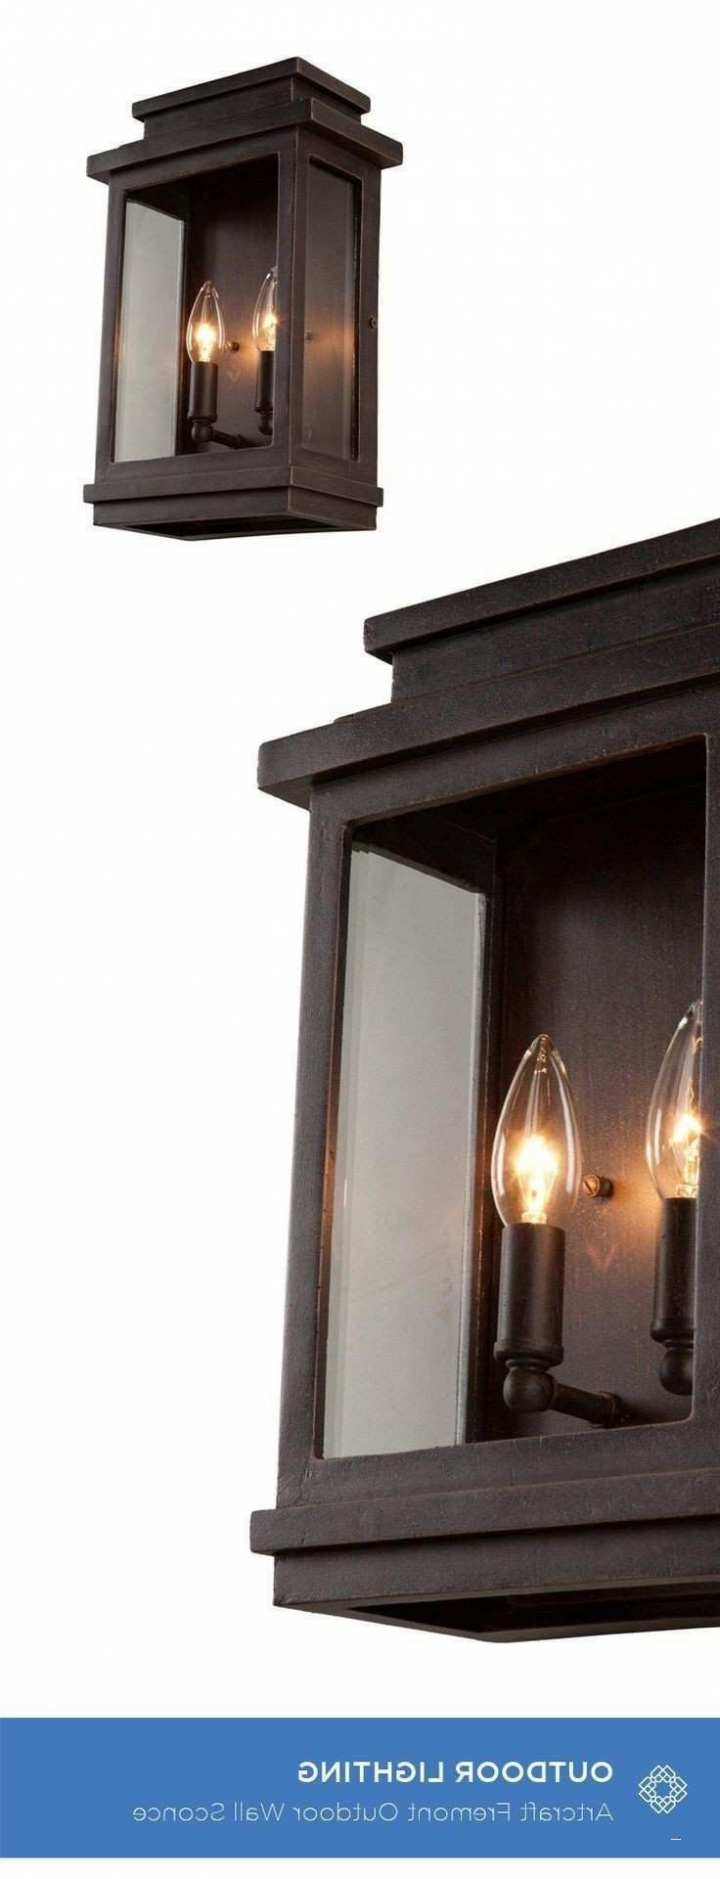 Most Popular Large Outdoor Lanterns Luxury Home Design Outdoor Light Timer Luxury Intended For Outdoor Timer Lanterns (View 7 of 20)